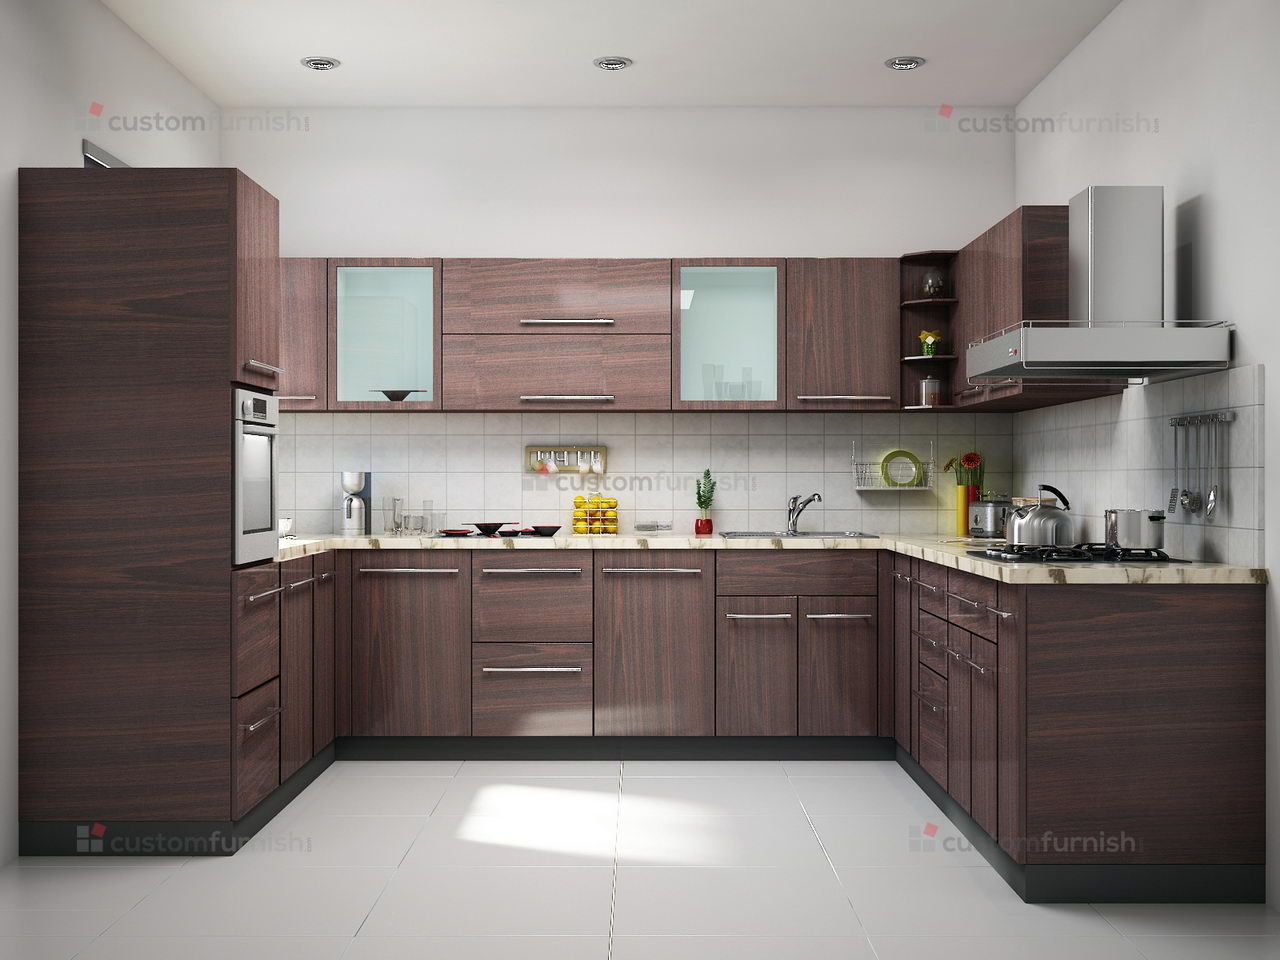 Small kitchen renovationscontemporary u shaped kitchen designs small kitchen - Kitchen interior desing ...